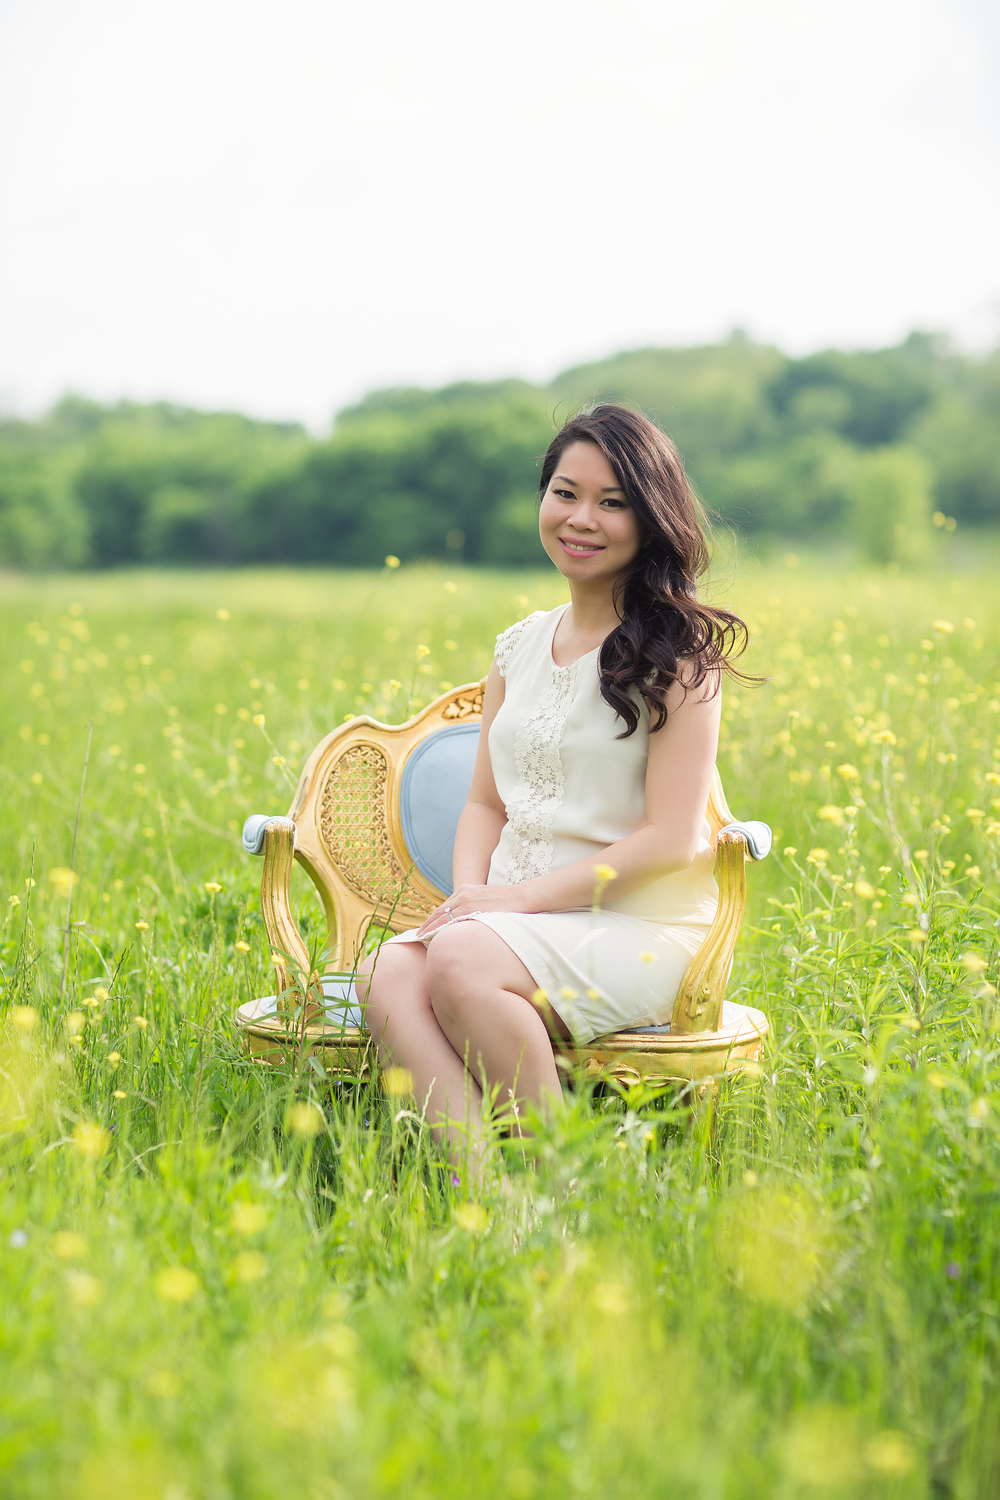 Oanh Le, Co-Founder